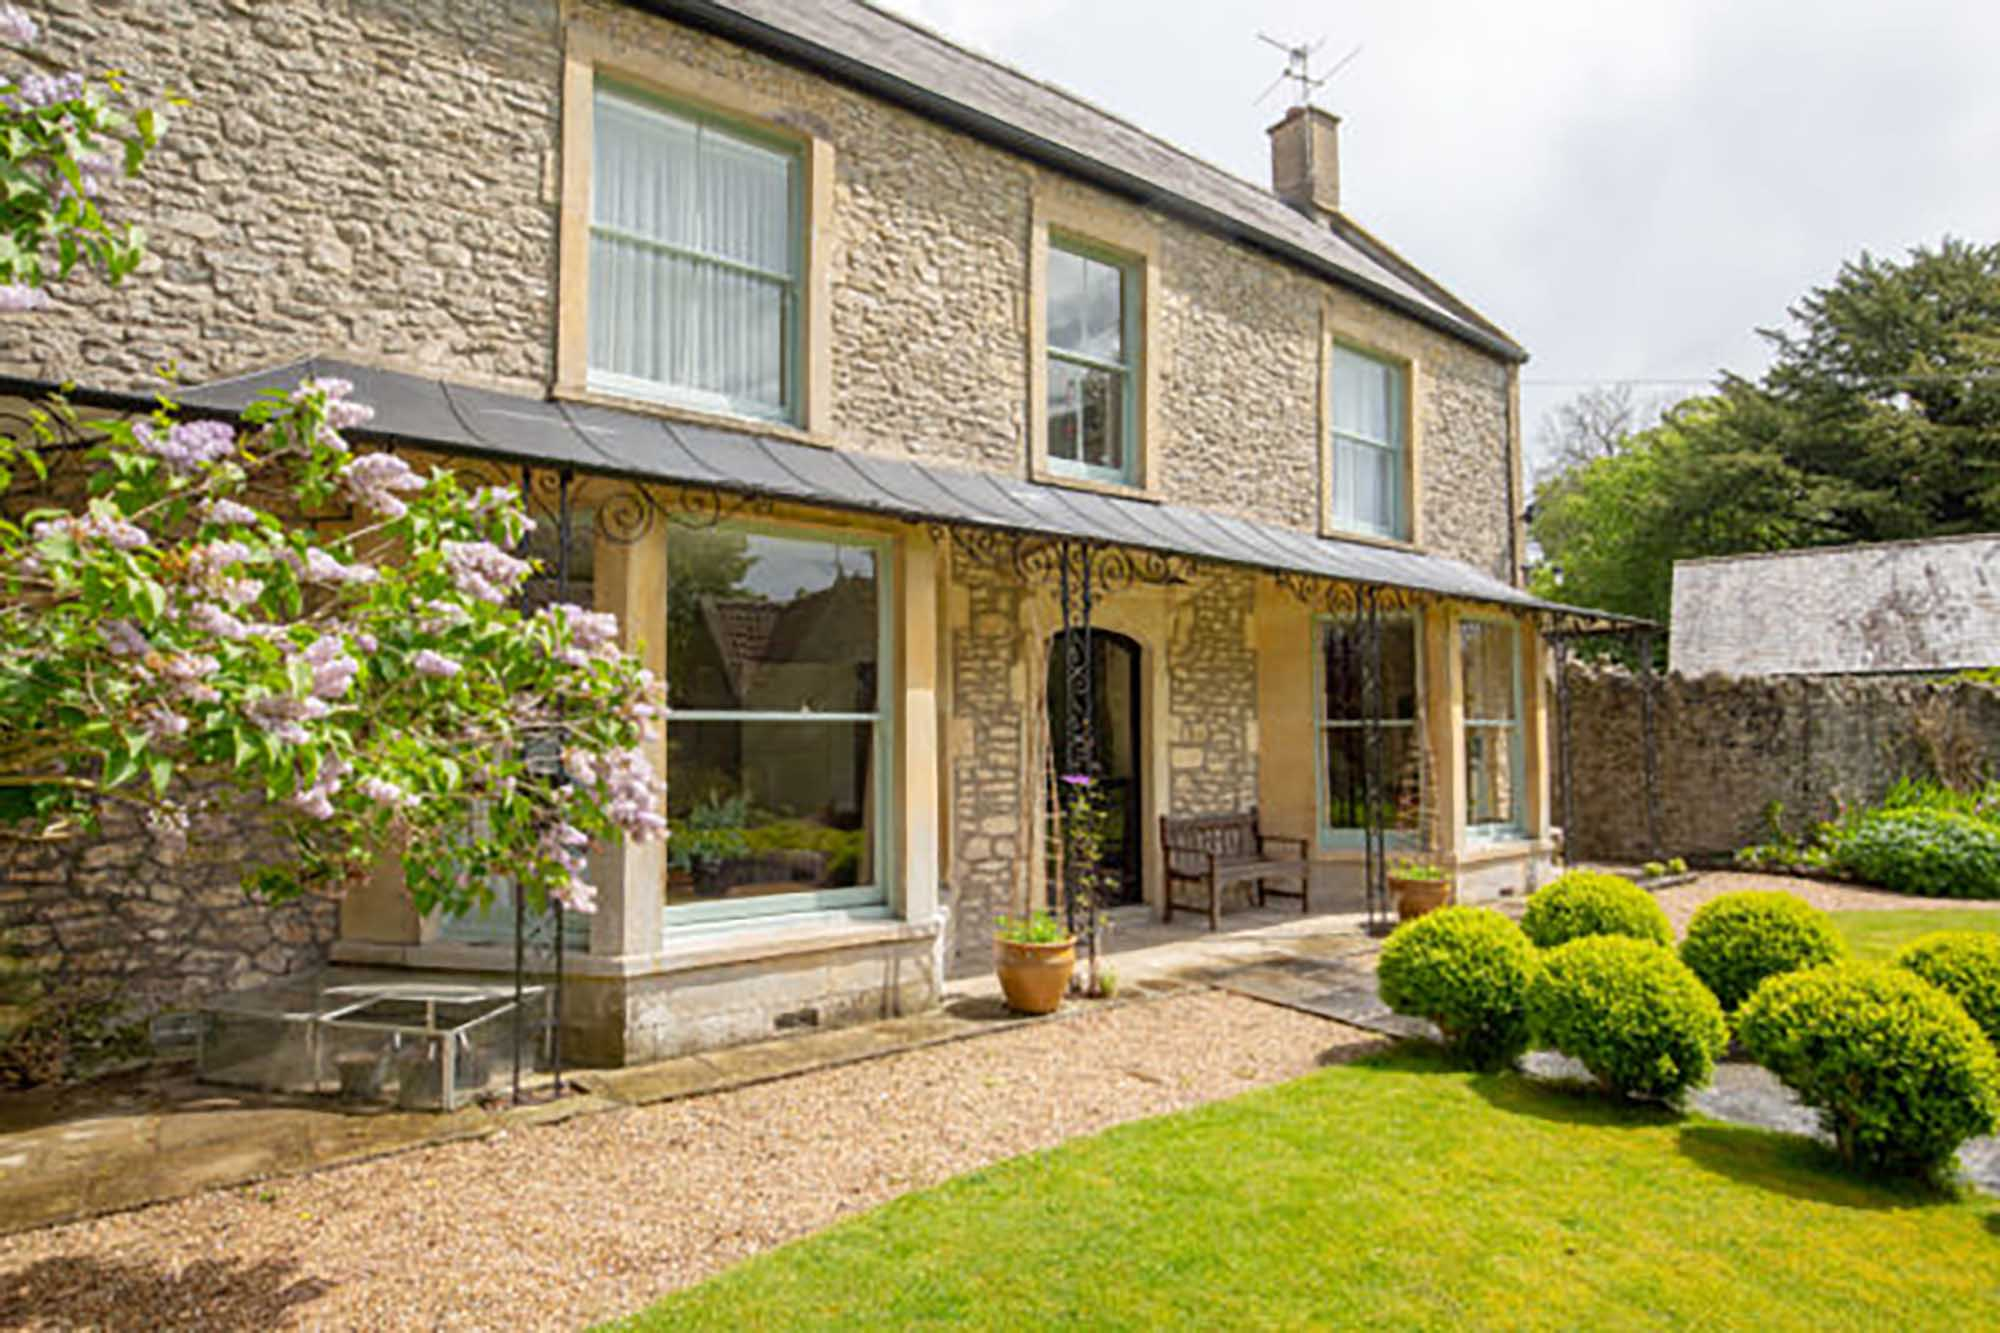 Large period house in tucked away location – Available for 6/7 month fixed rental